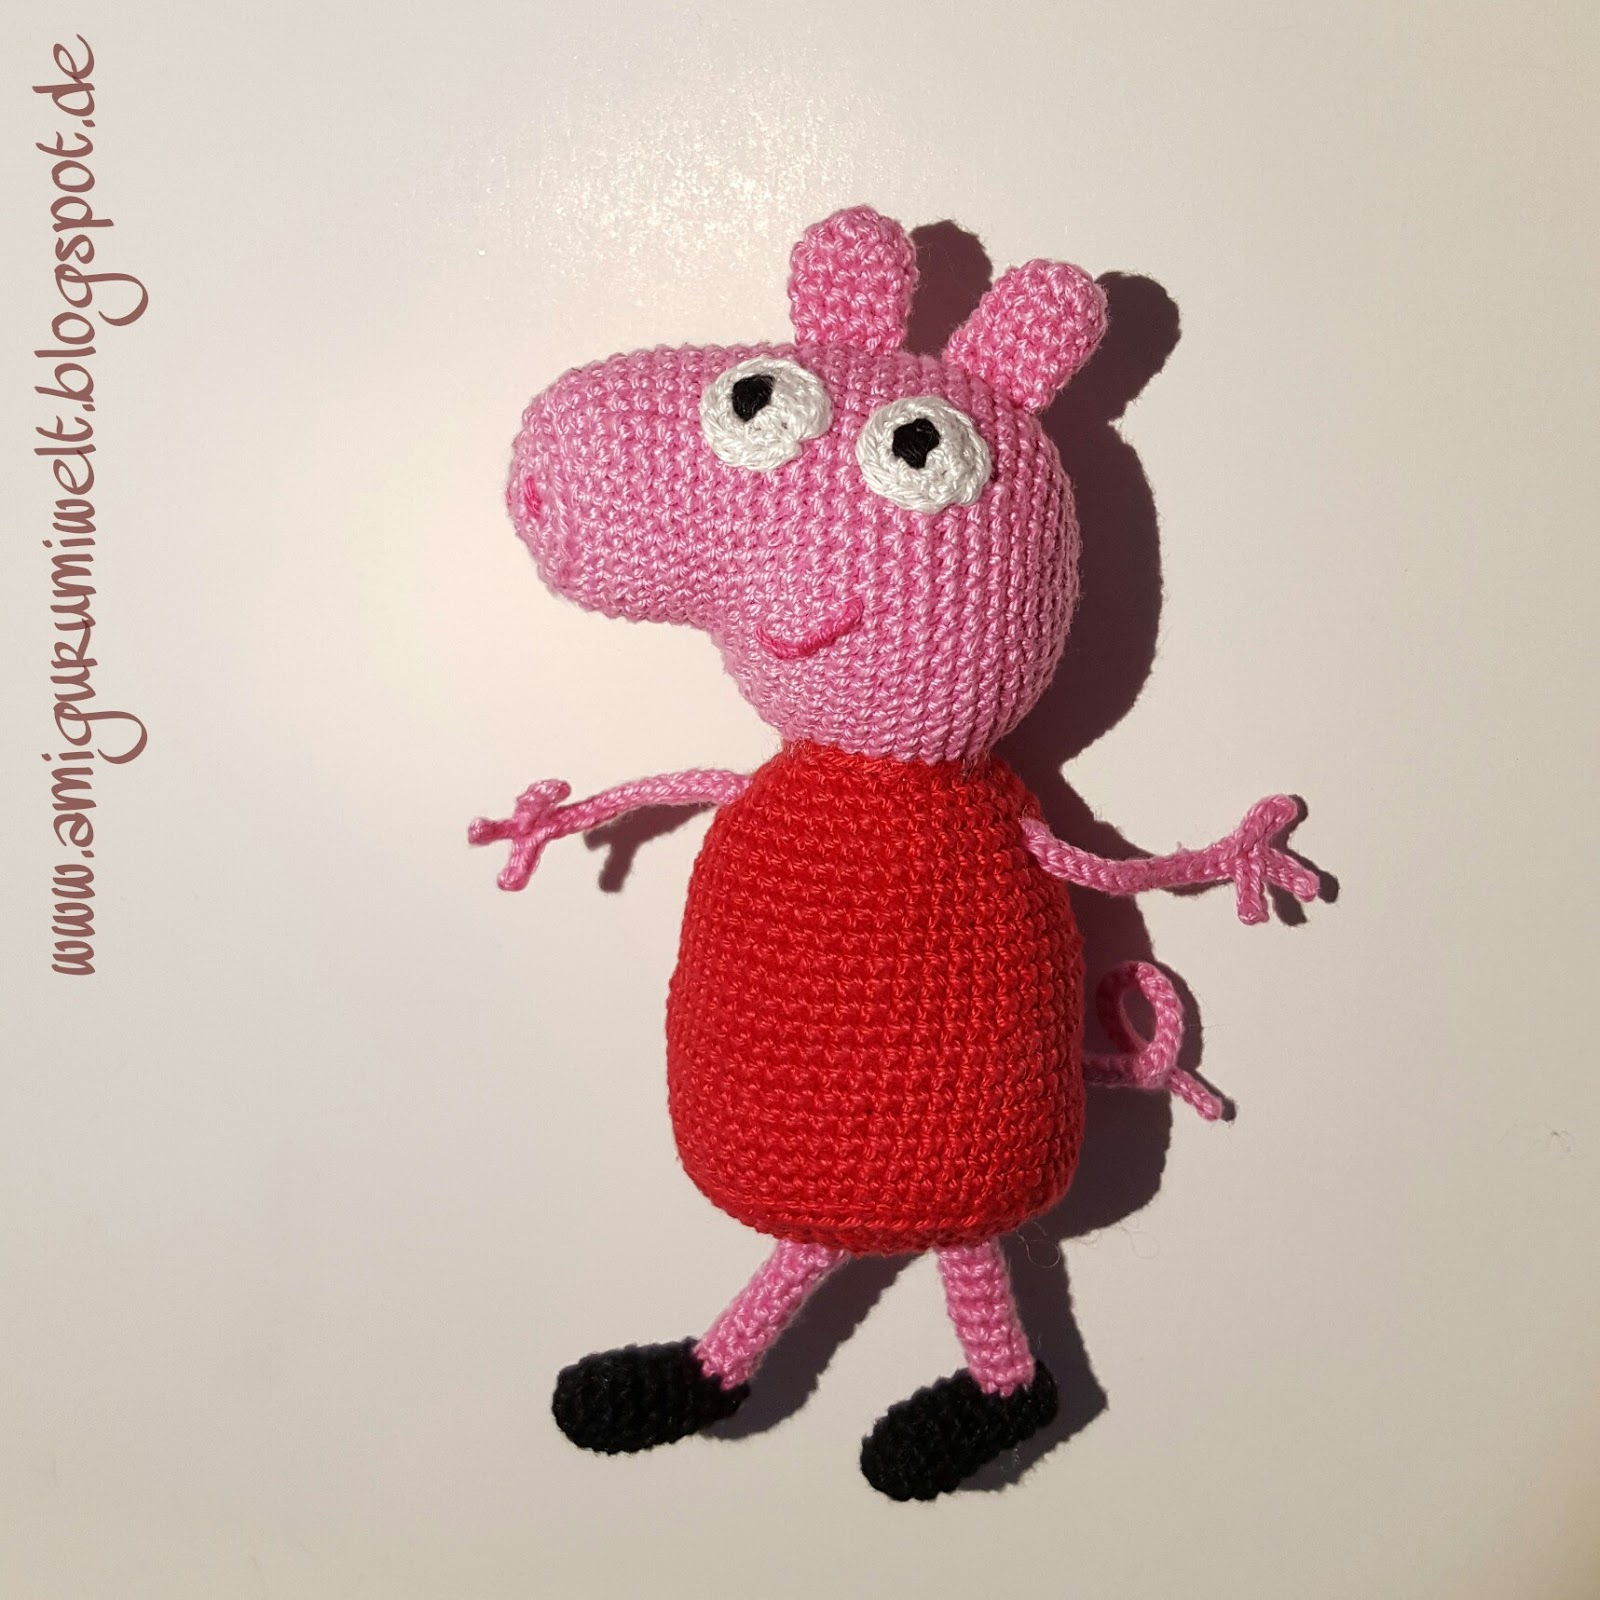 Amigurumi for Beginners Tutorial Peppa Pig Amigurumi | How to ... | 1600x1600